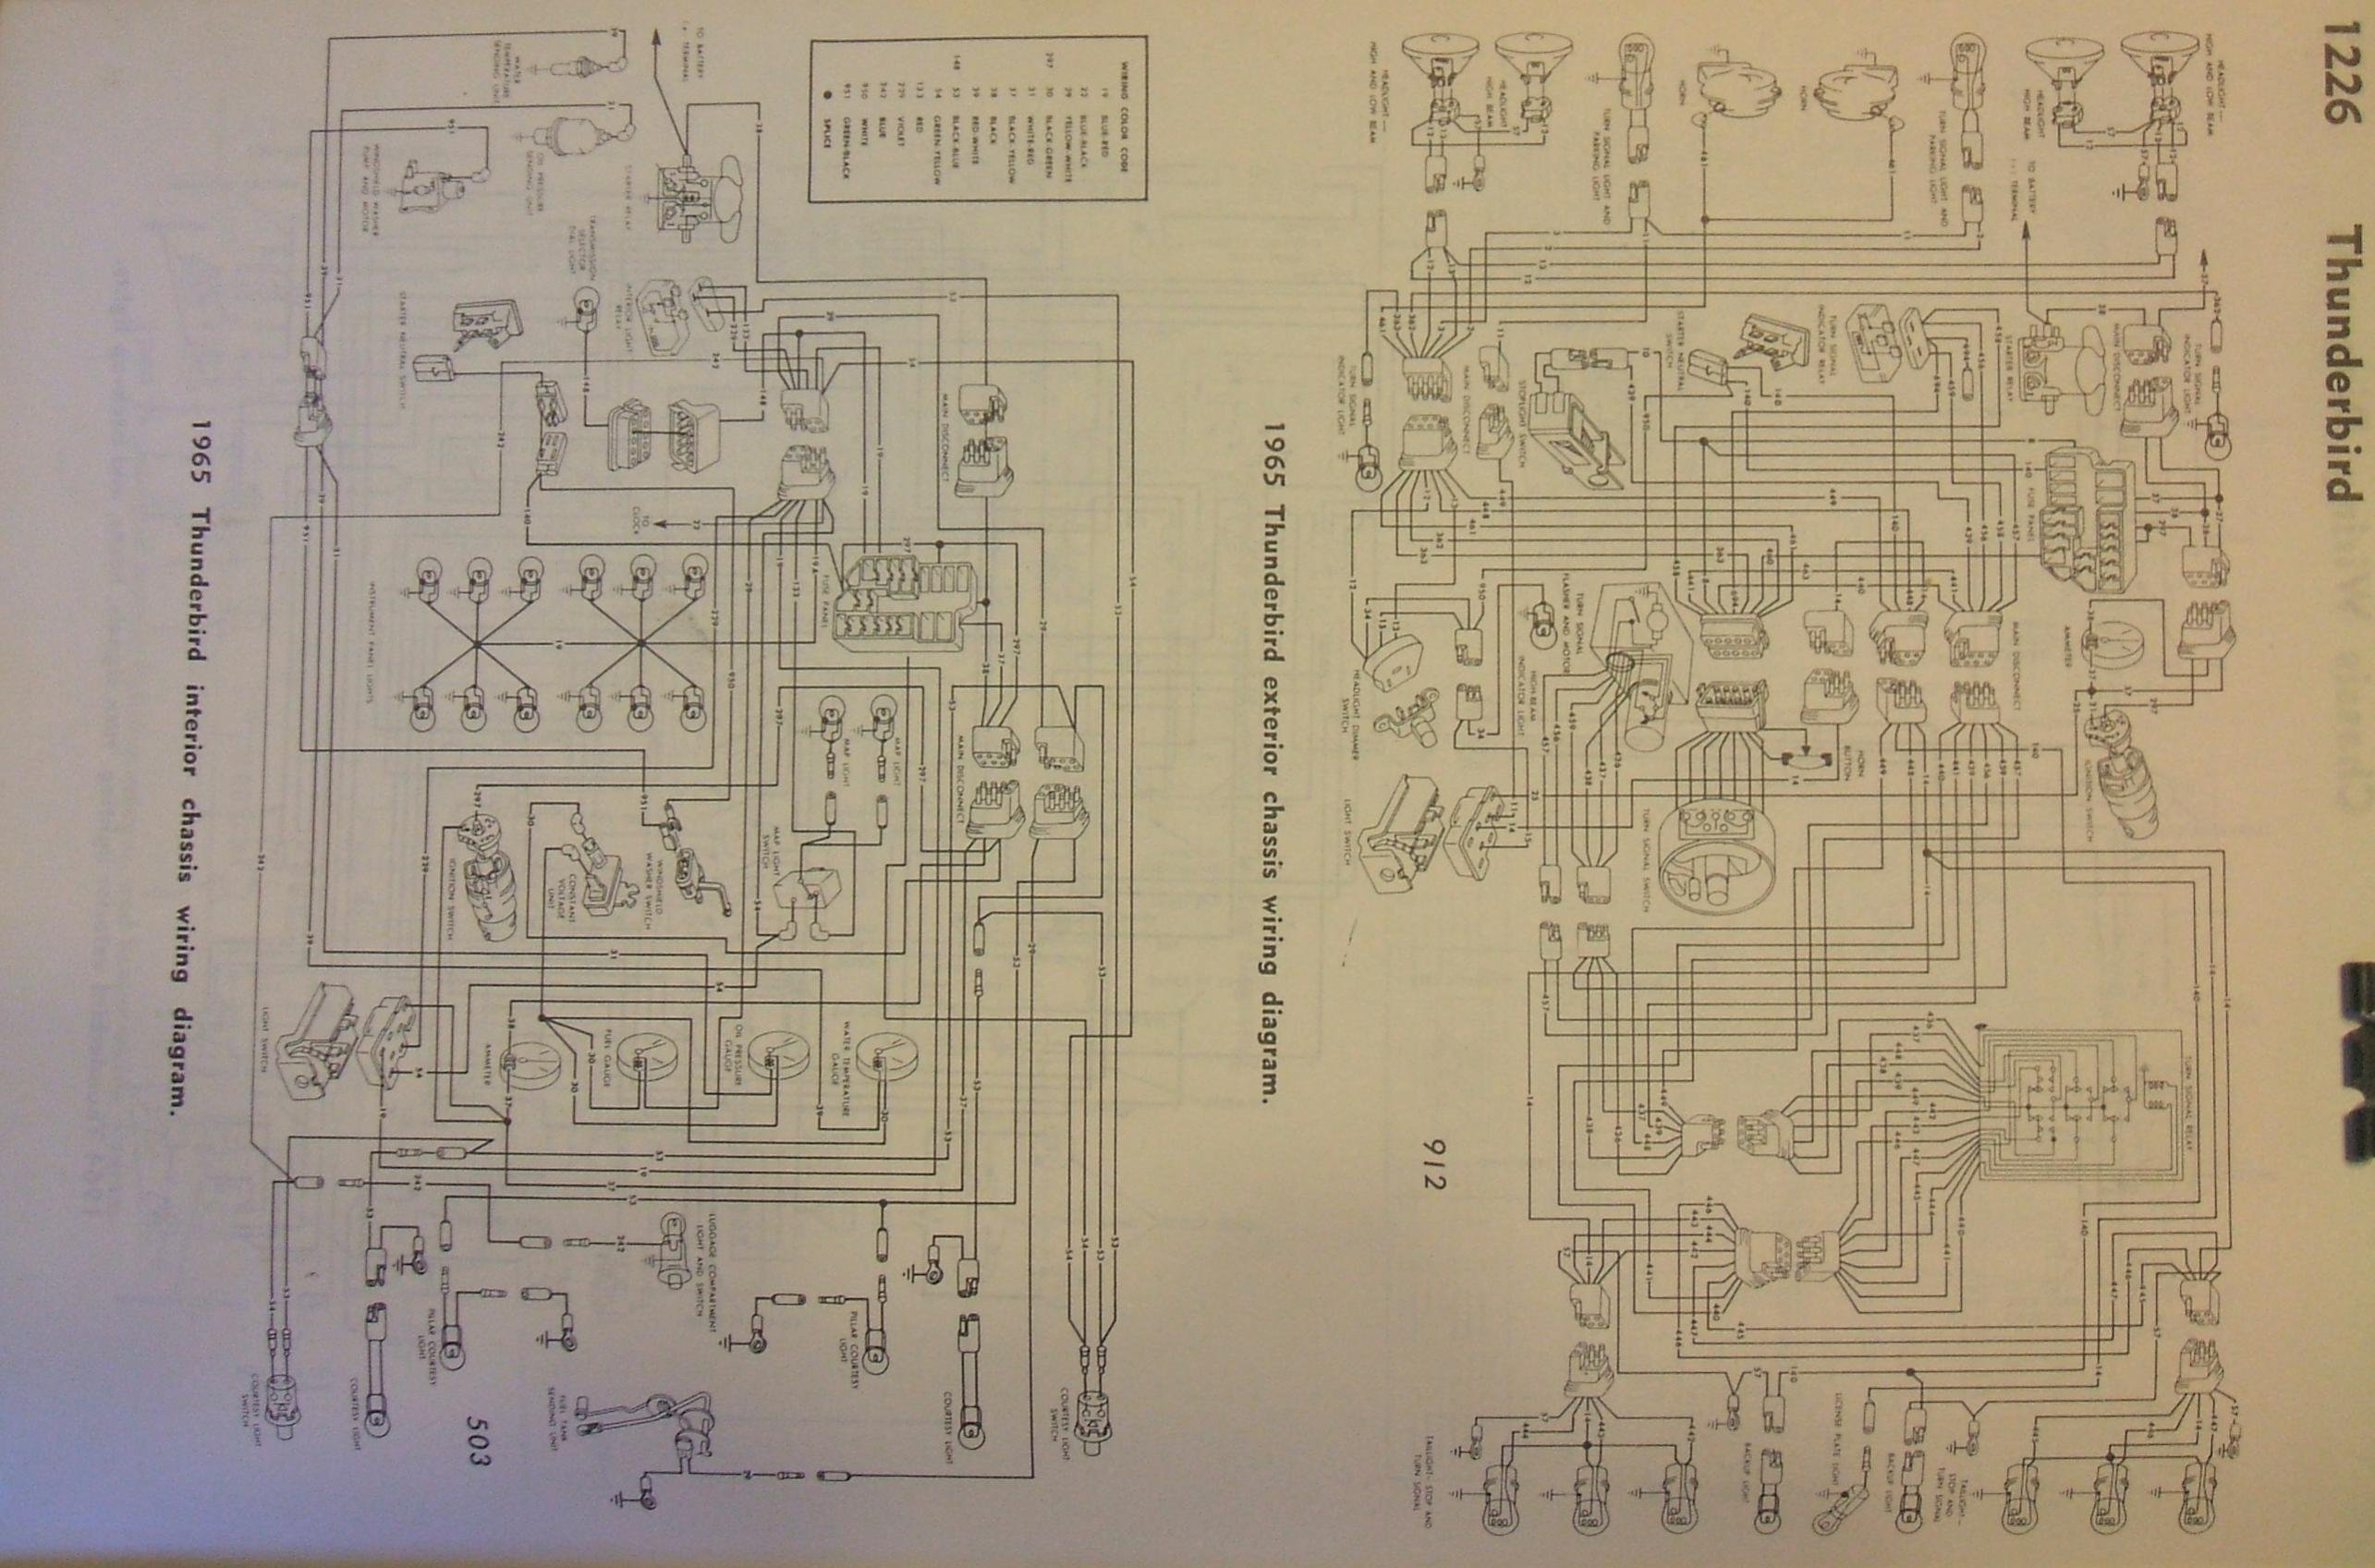 1968 Thunderbird Turn Signal Diagram Trusted Wiring 68 Mustang Switch 1967 39 Images 2858 124296d1299765915